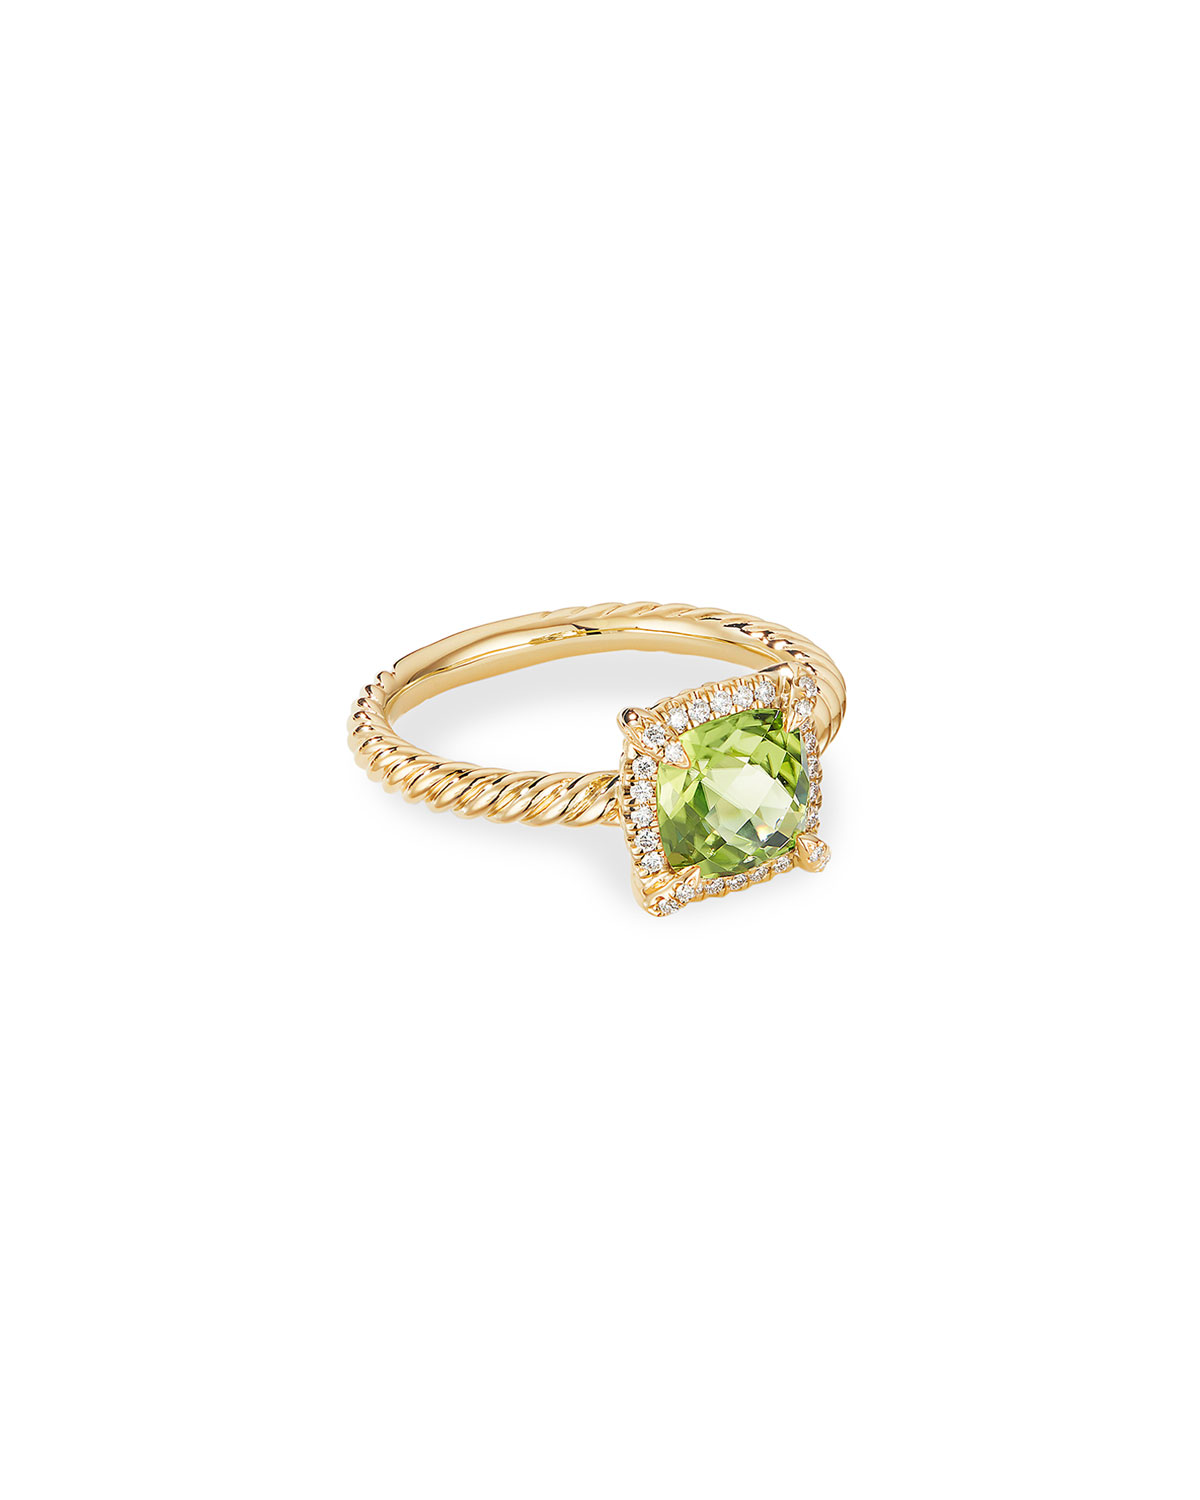 David Yurman Petite Chatelaine Pave Bezel Ring in 18K Gold with Peridot, Size 8